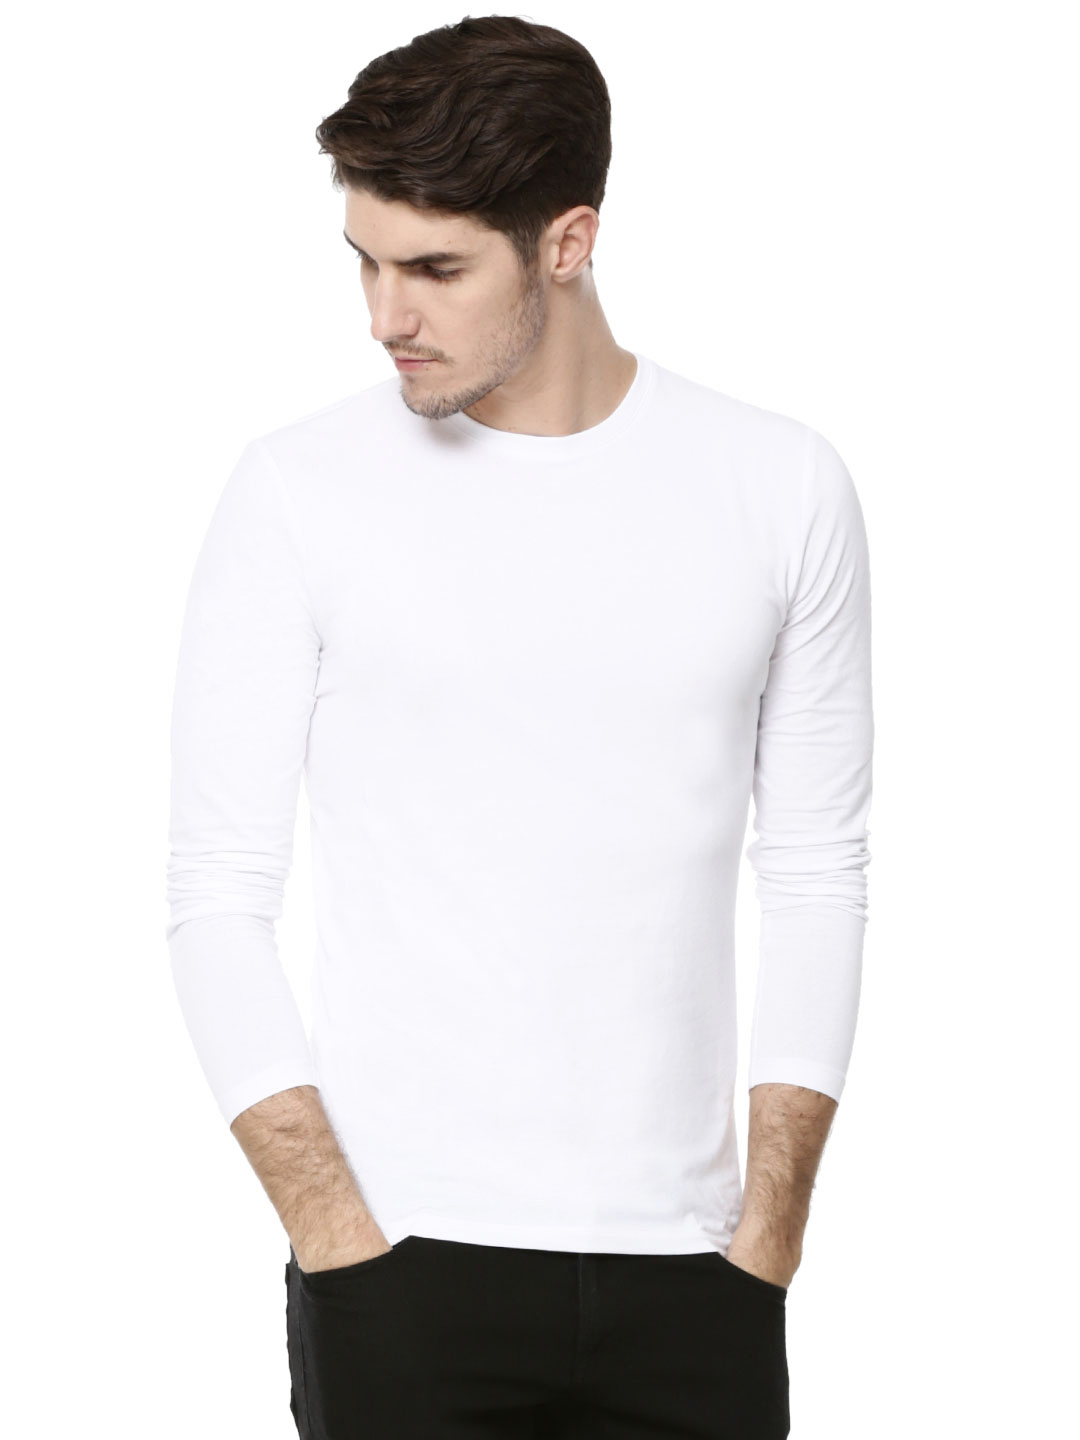 New Look White Basic T-Shirt In Long Sleeves 1